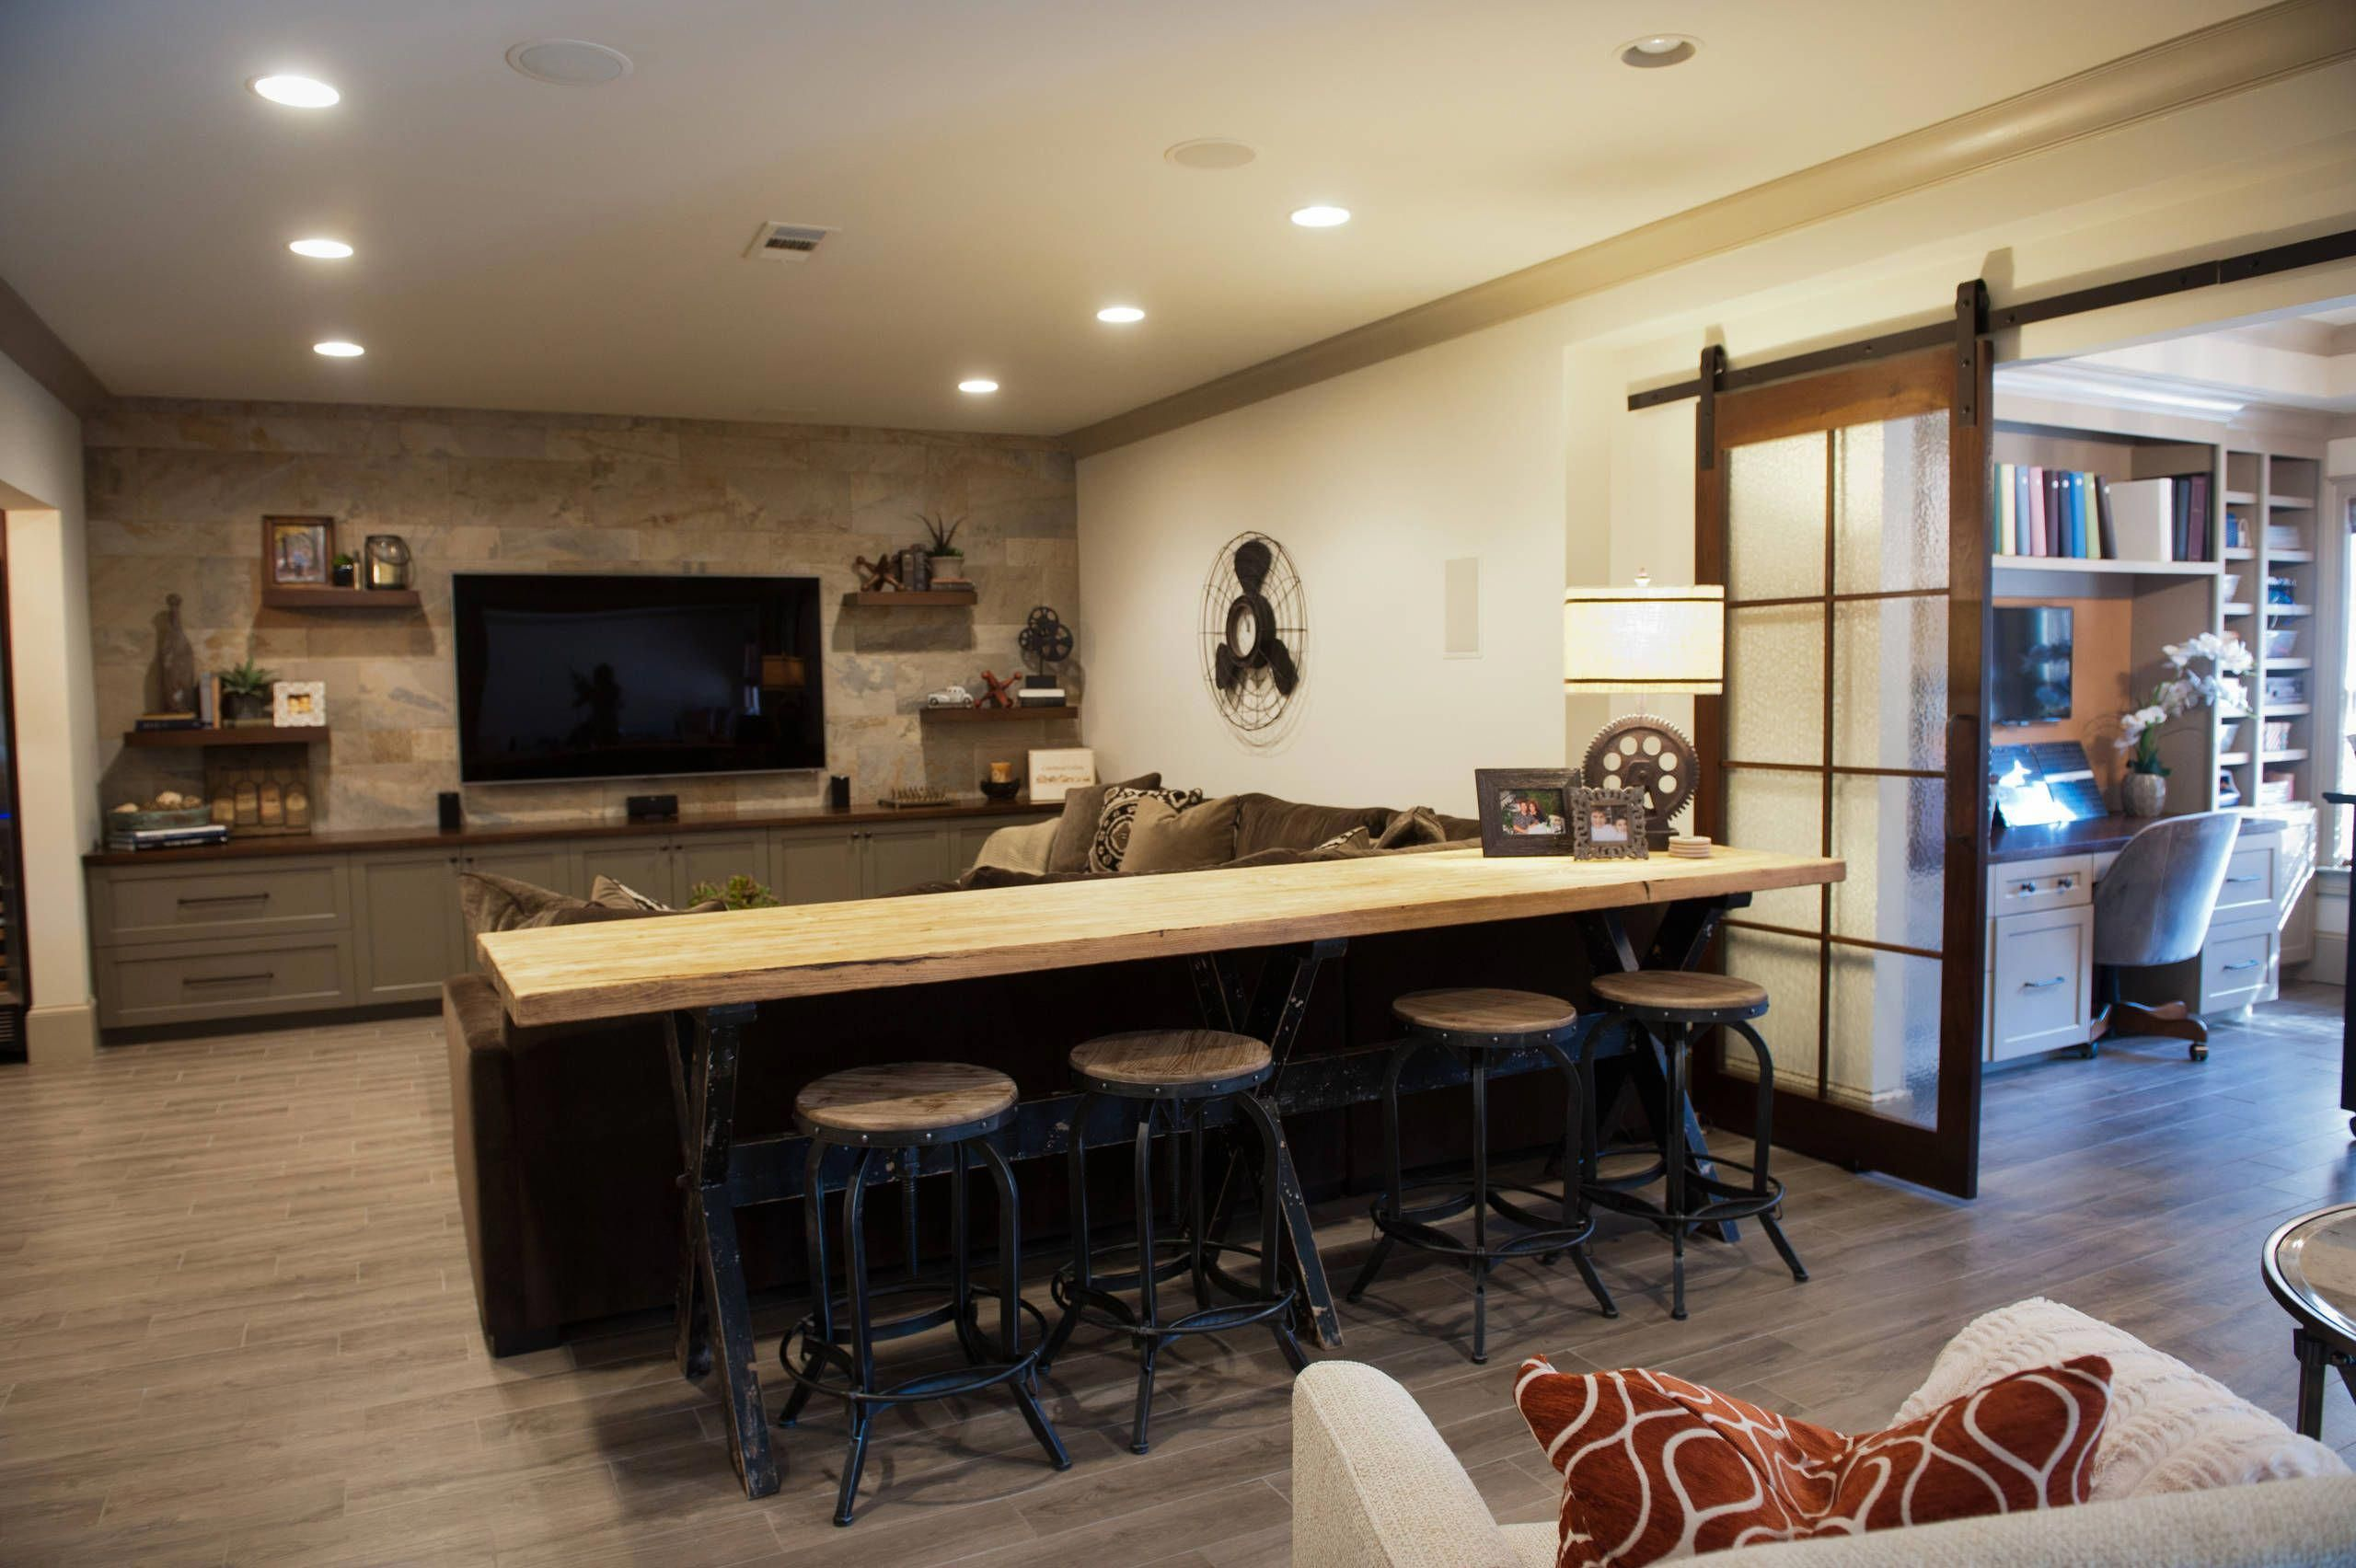 How To Design A Family Room Layout Smallroomdesign With Images